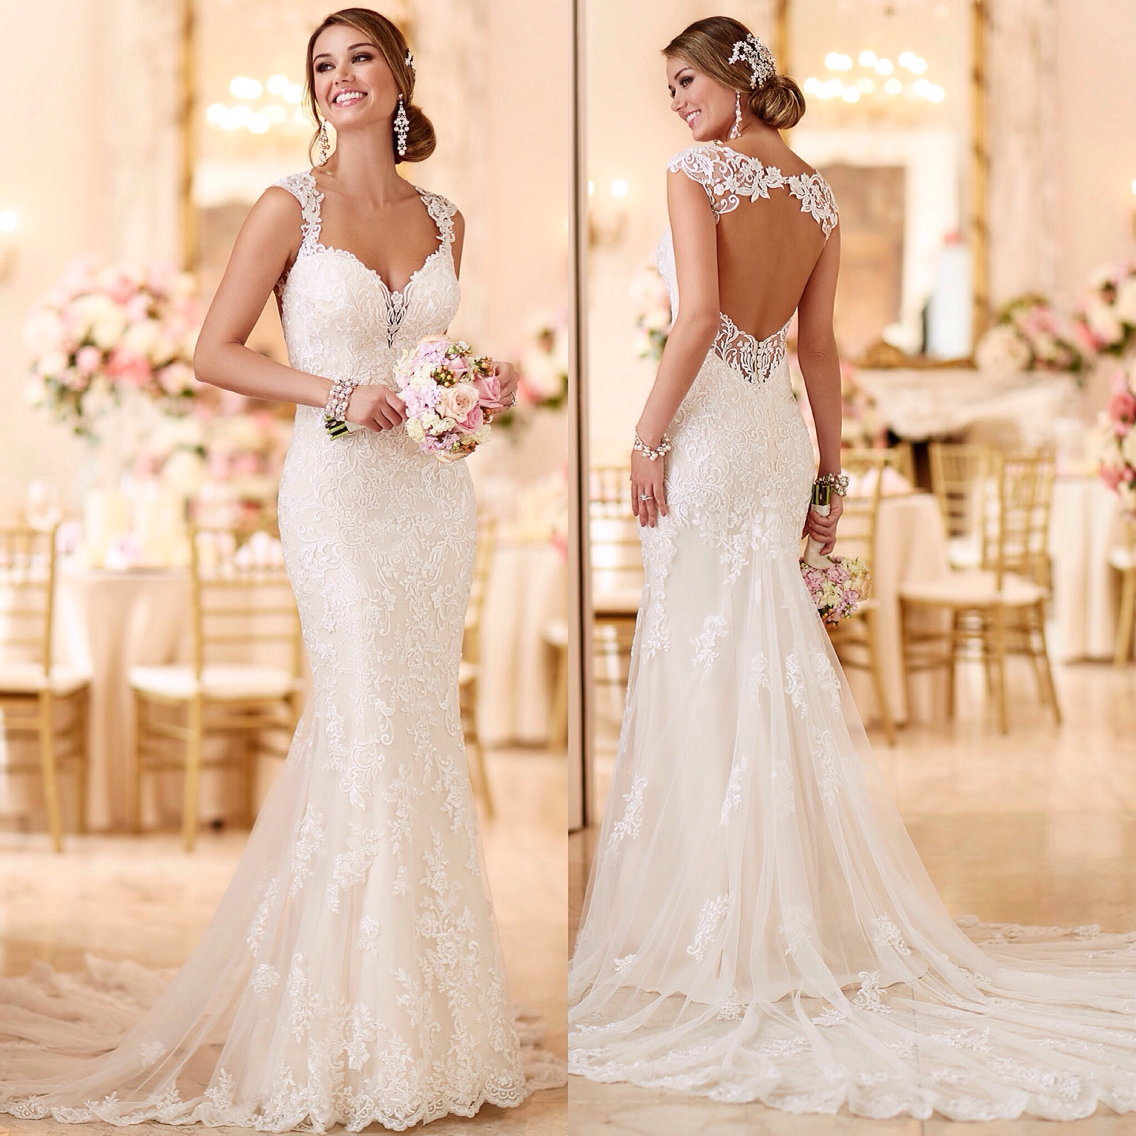 65 Perfect Low Back Wedding Dresses | The Best Wedding Dresses